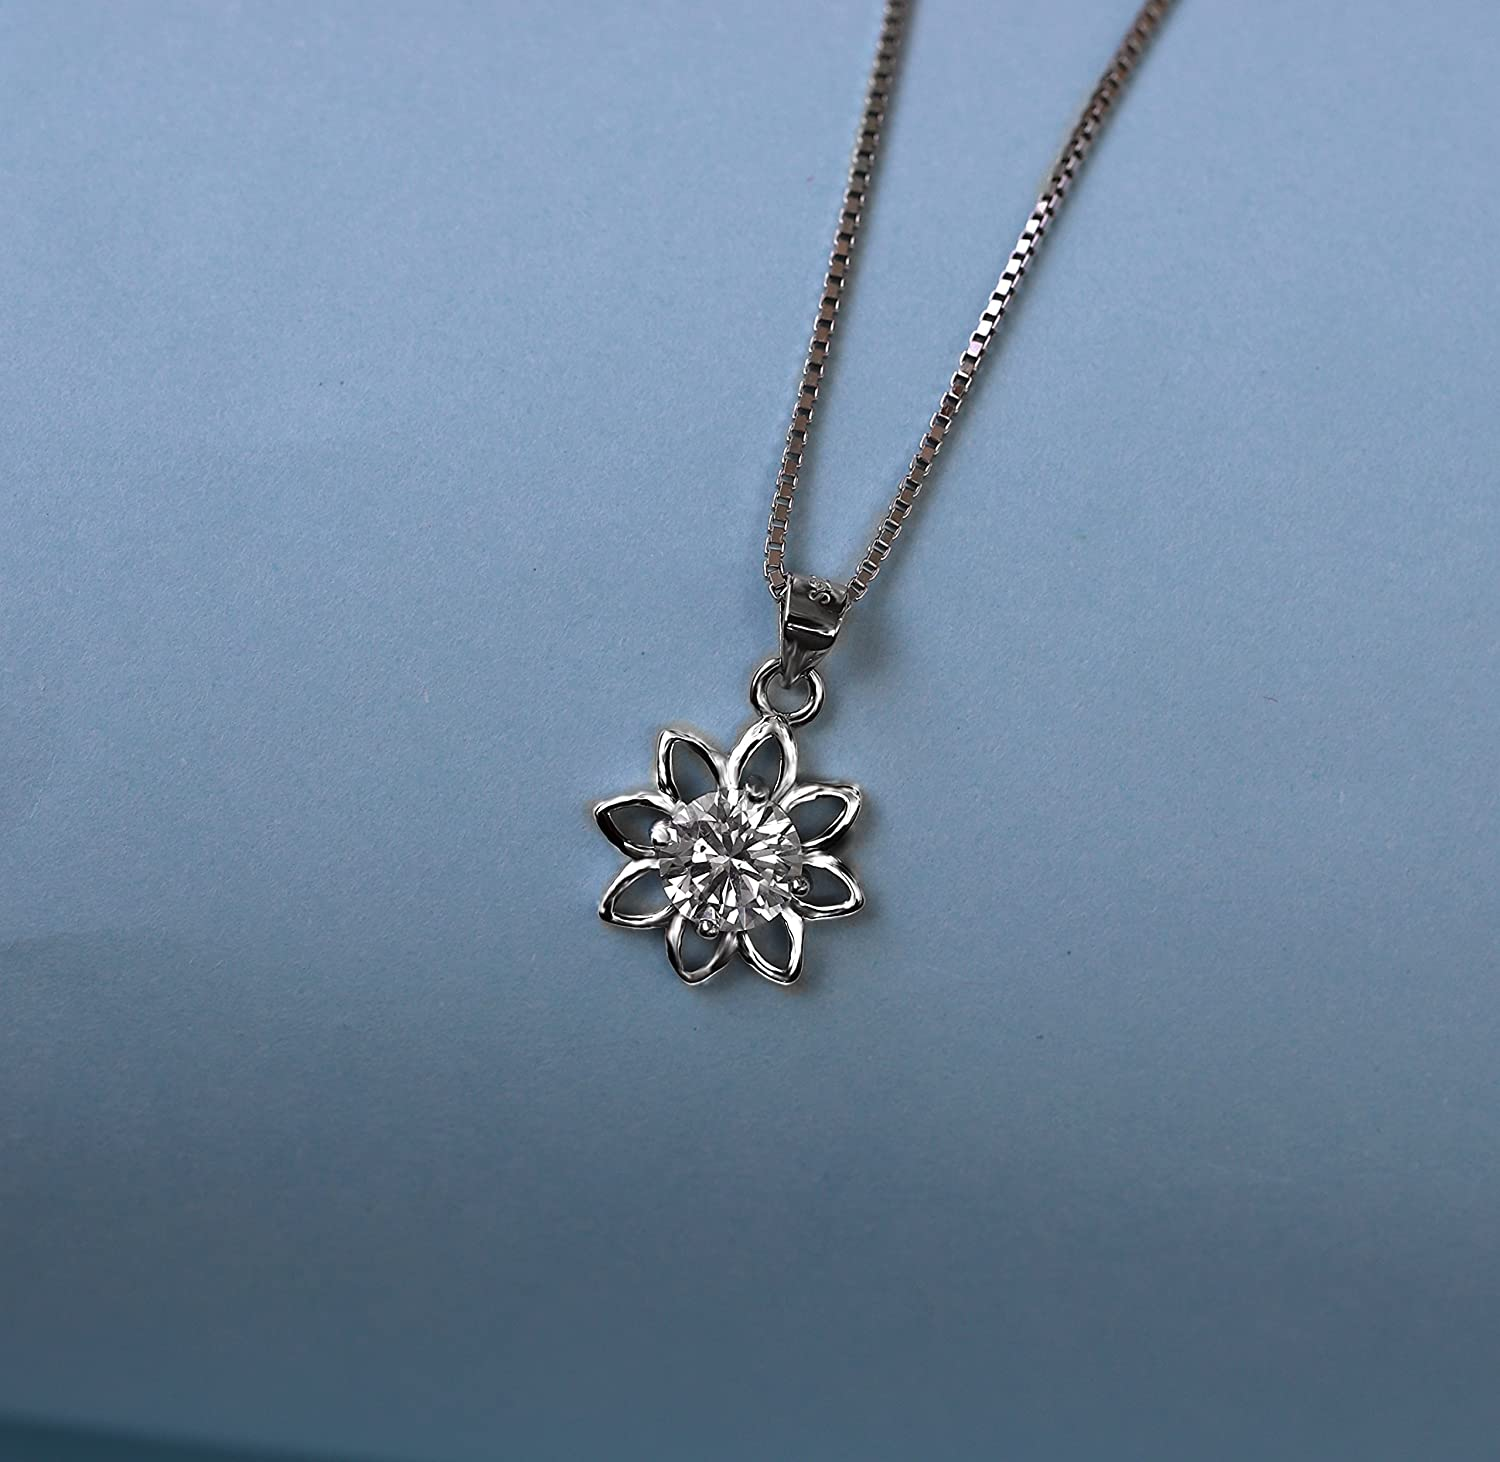 POLITENY Monthe Day Gift 18k Gold Plated 925 Sterling Silver CZ Flower Pendants Necklaces for Women 18